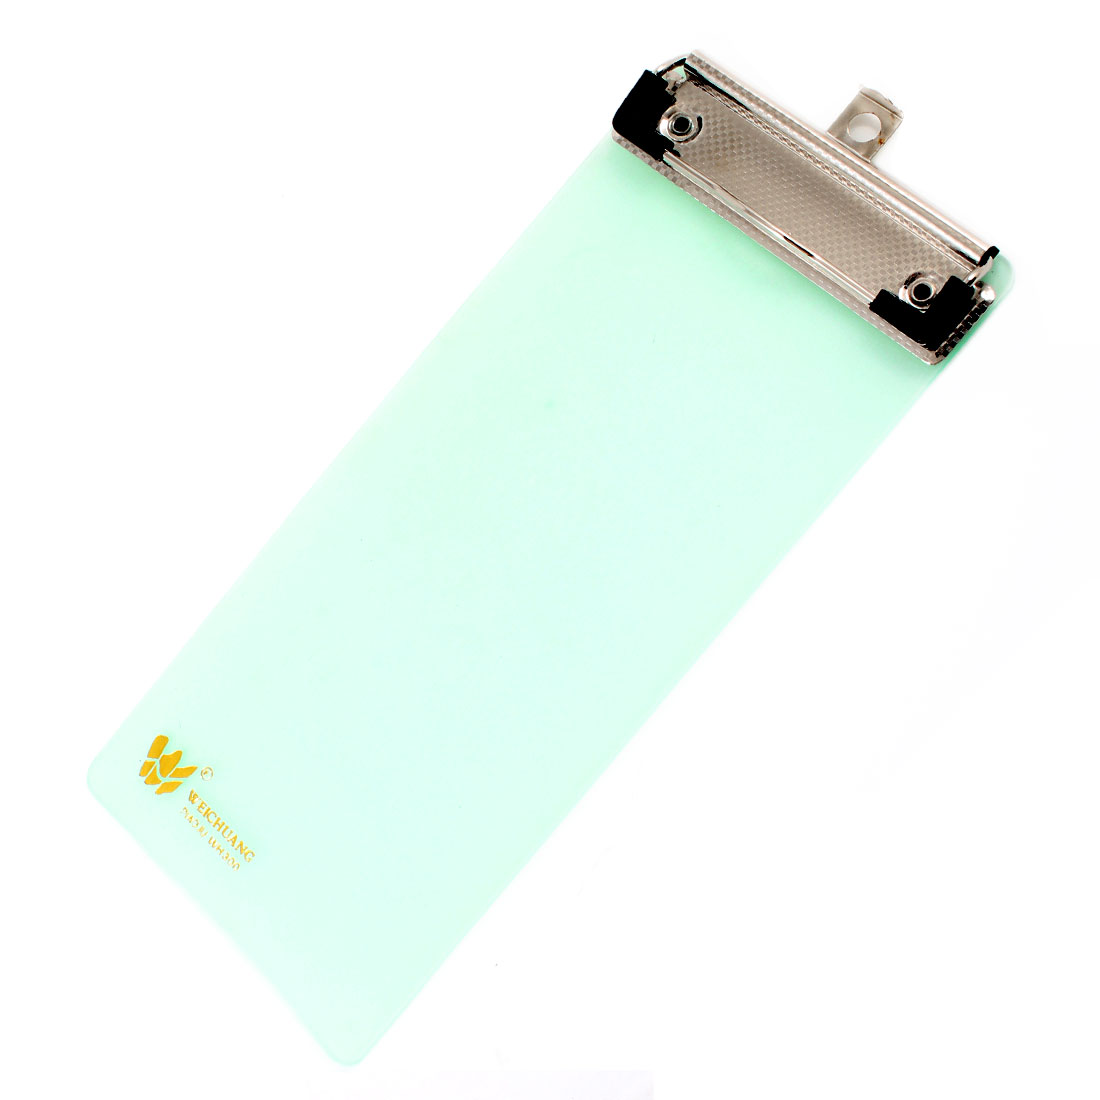 Silver Tone Metal Clip Clear Pale Green Plastic Clipboard Paper Folder